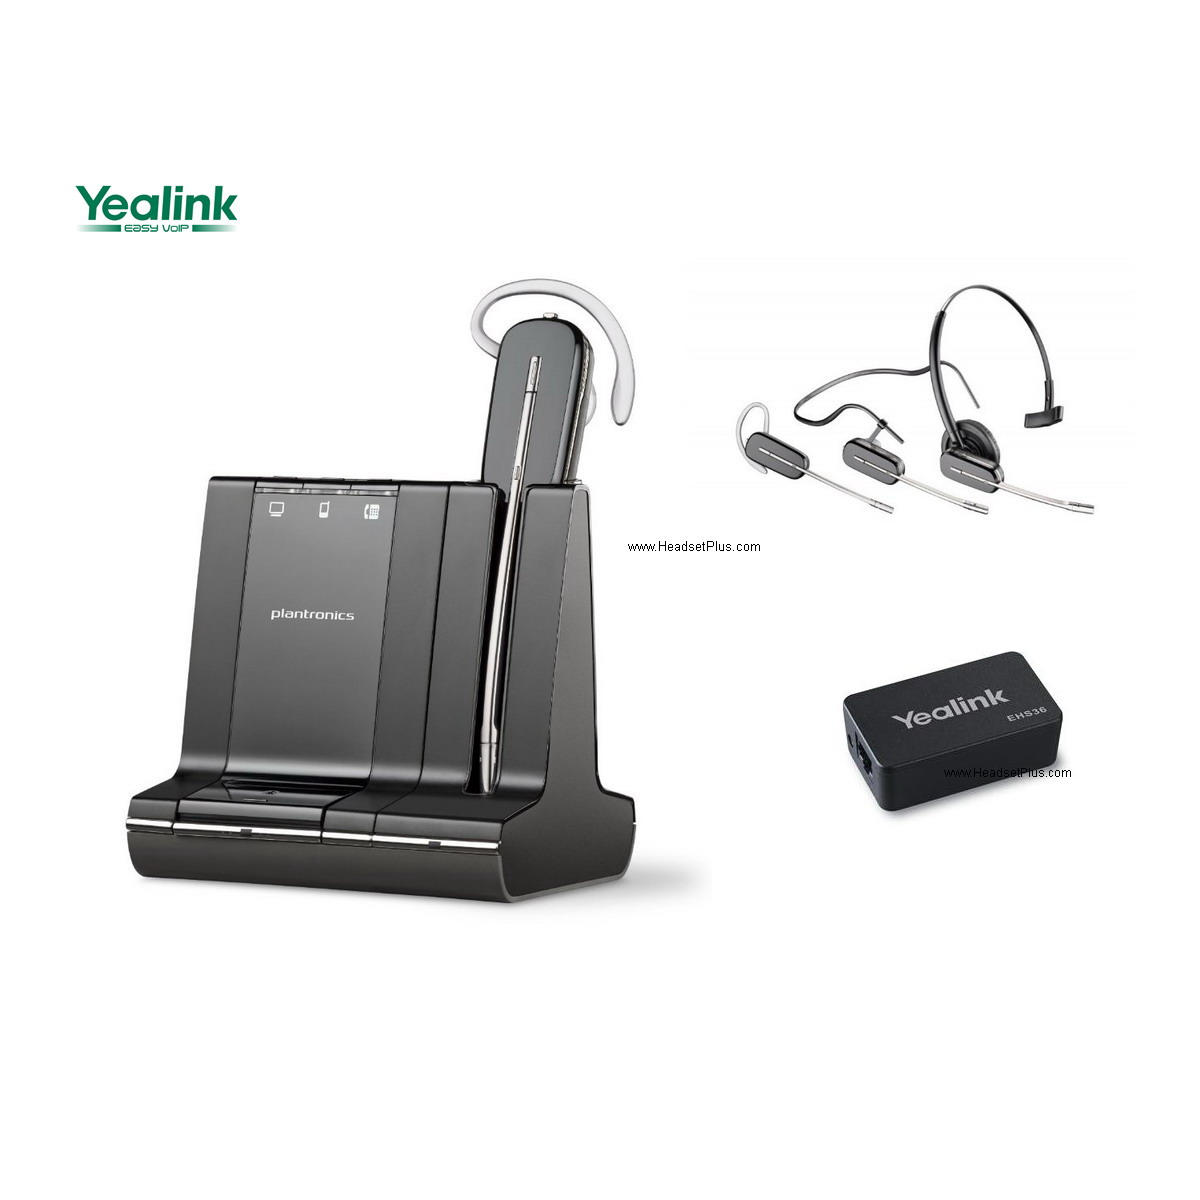 Plantronics Savi W740 + EHS Yealink Certified Wireless Headset